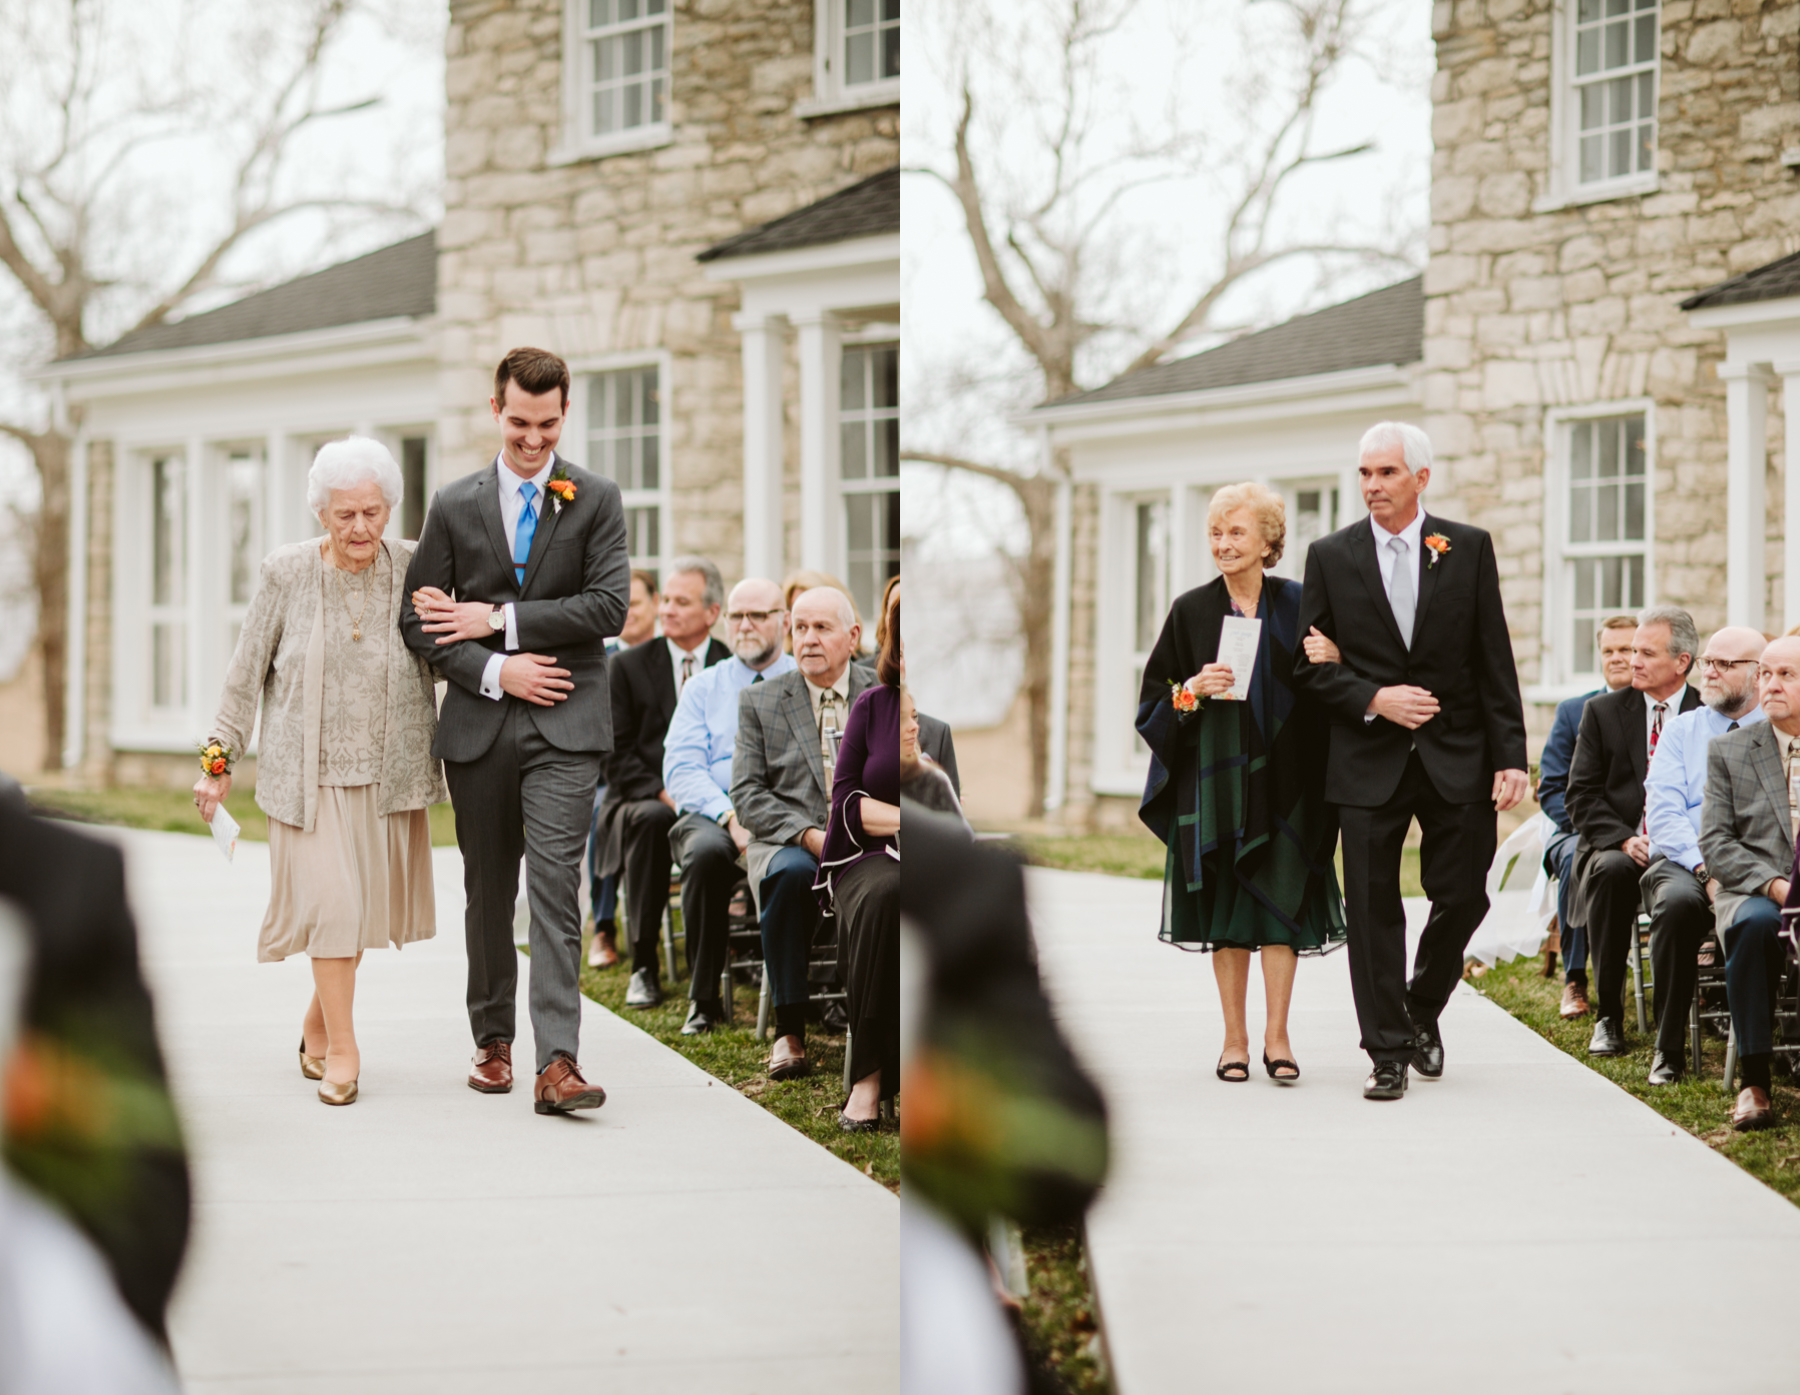 Grandparents walking down the aisle before a wedding at the stone house of st charles